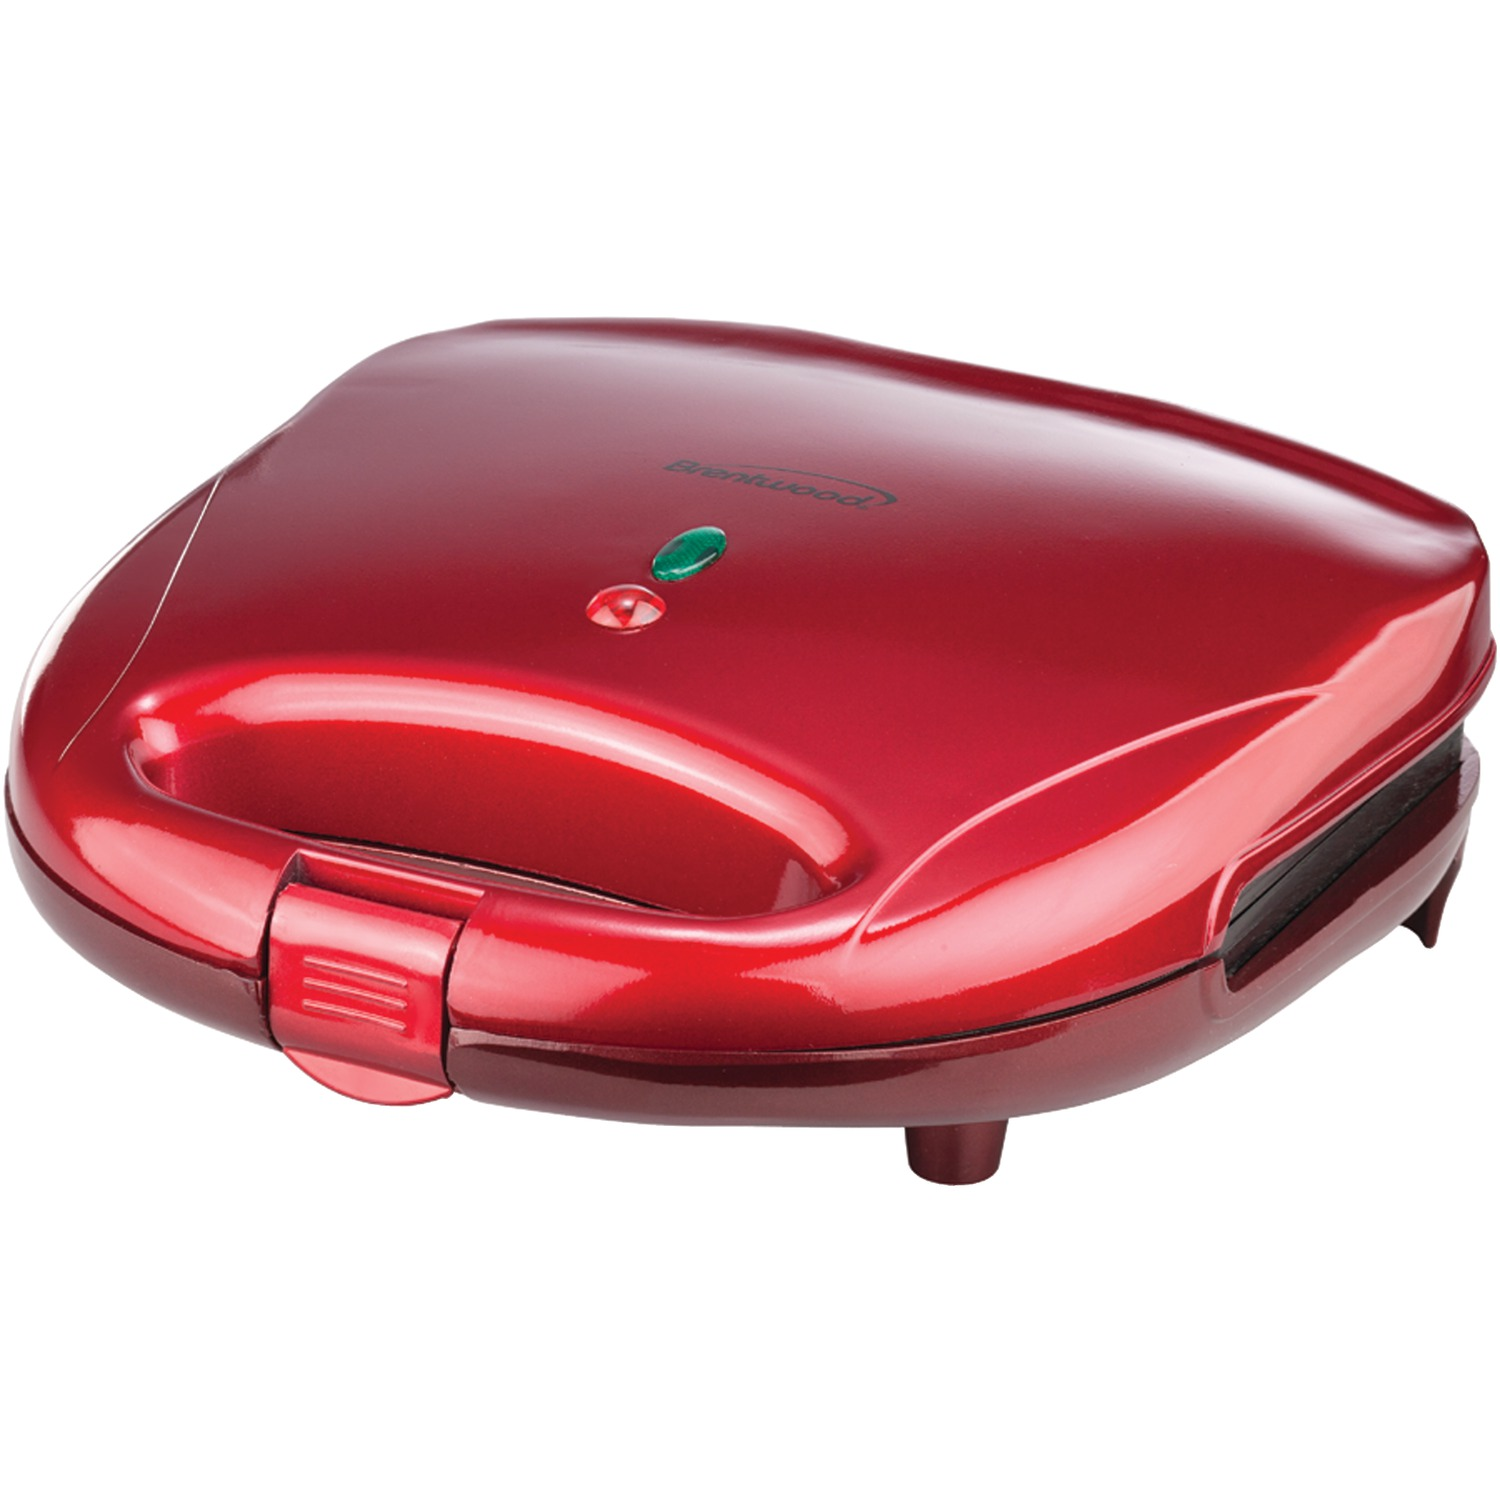 Brentwood Non-Stick Compact Dual Sandwich Maker, Red